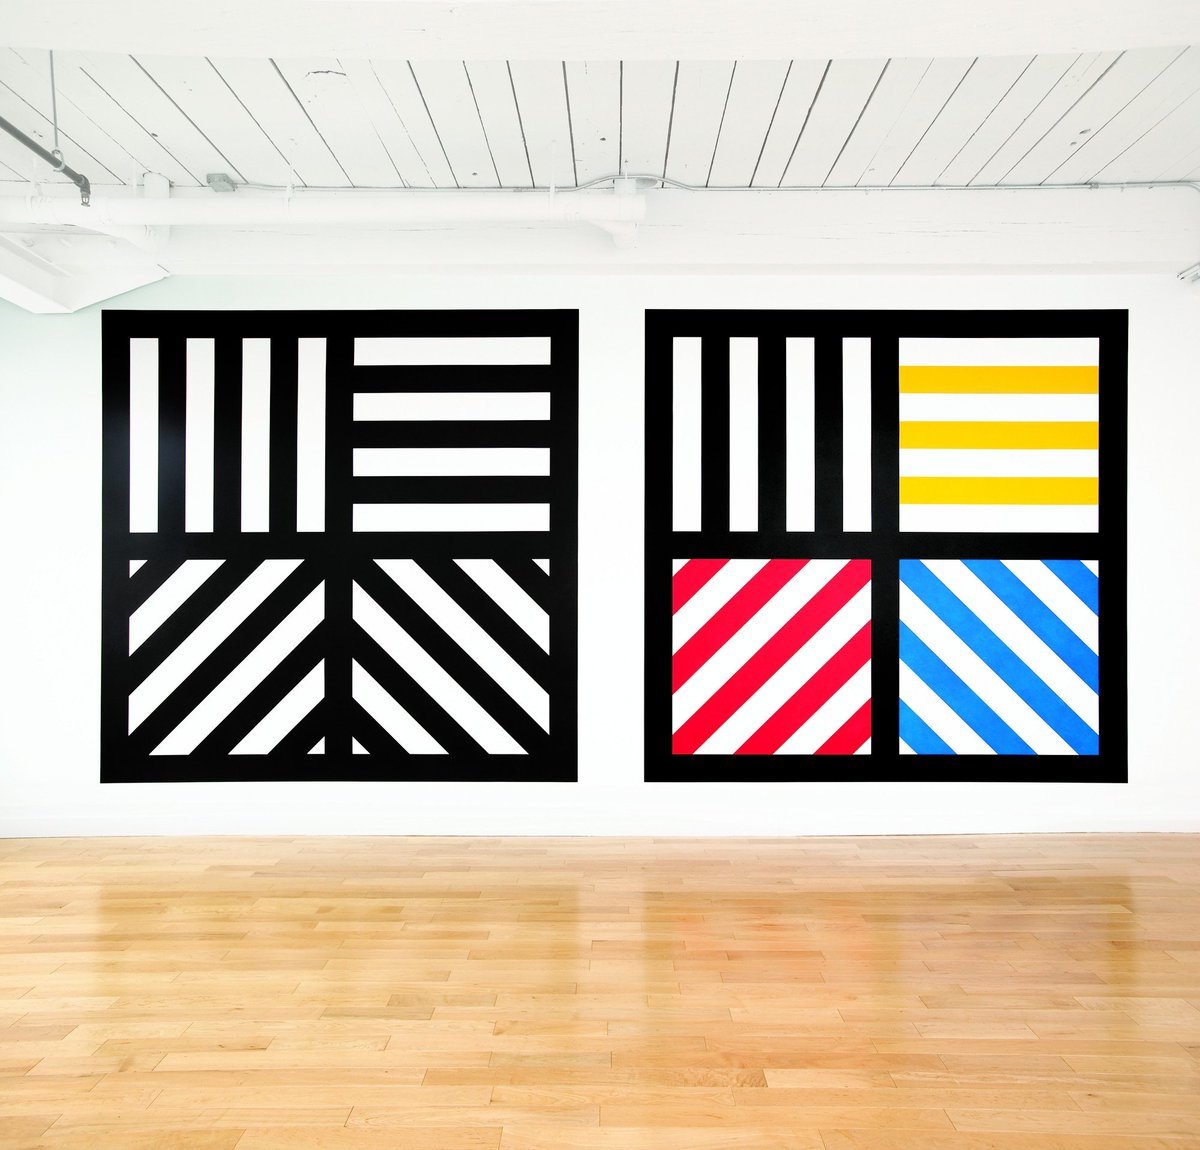 """Happy, happy birthday to Sol LeWitt, the man who famously opined """"you shouldn't be a prisoner of your own ideas."""" https://t.co/WxC76nzRg8"""